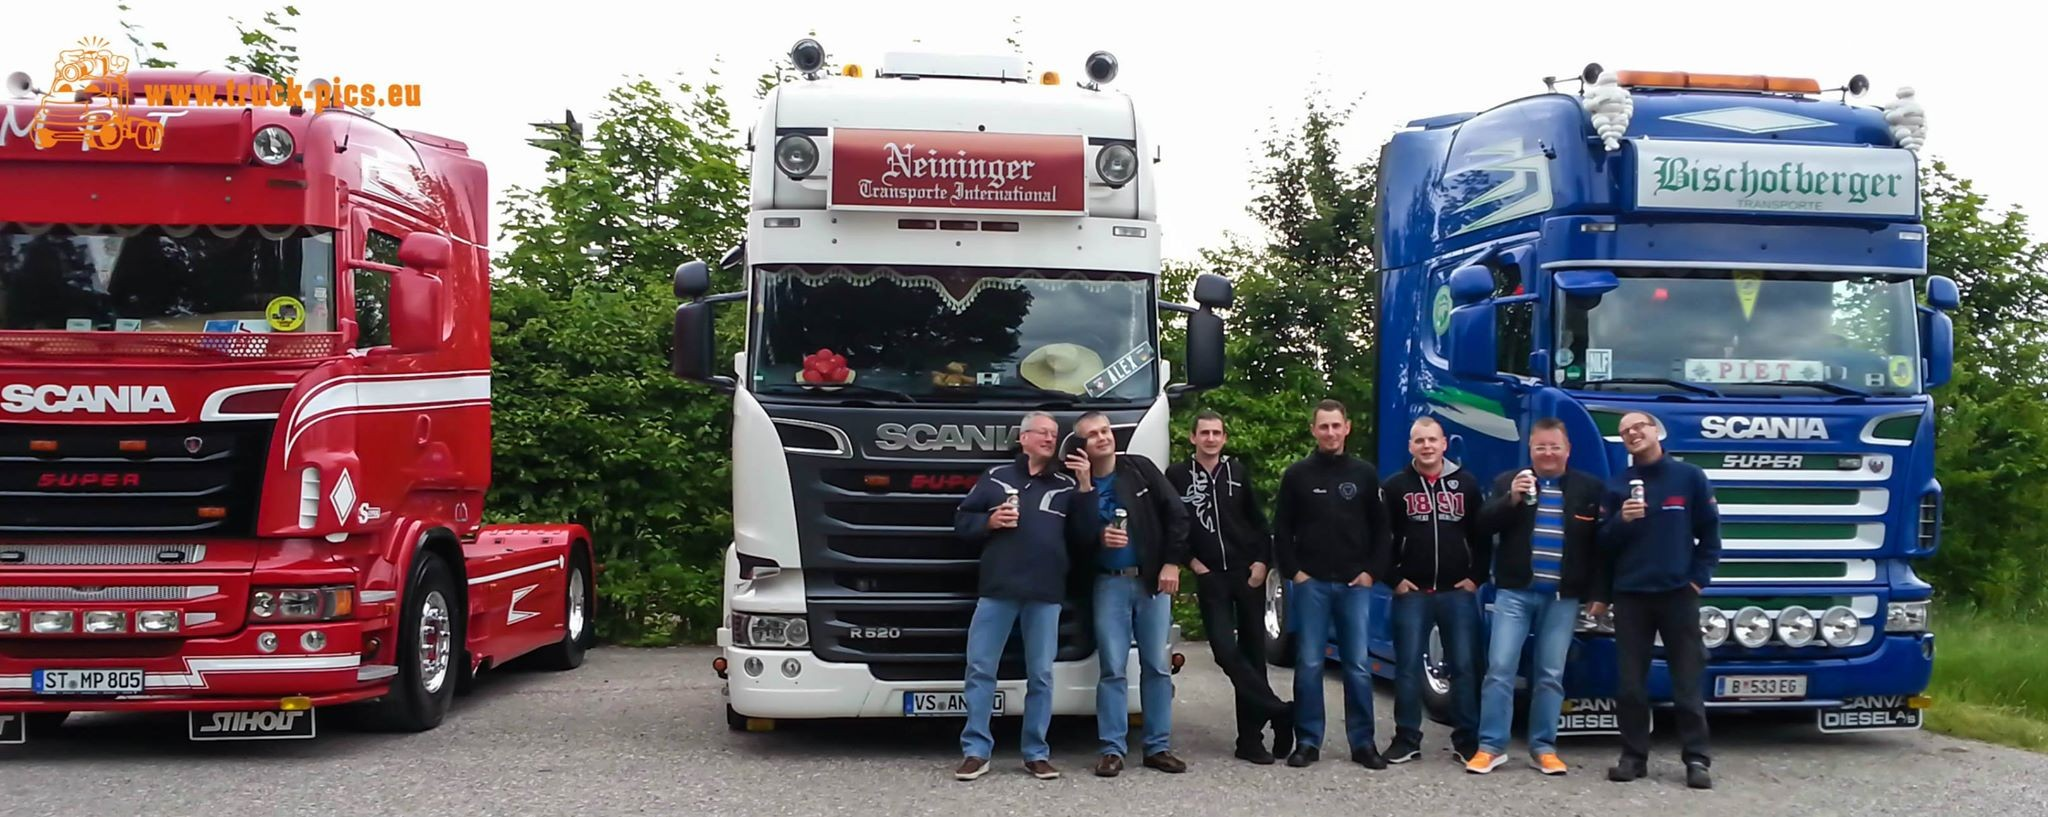 Gottfried Helfert bkf Netphen powered by www.truck-pics 10